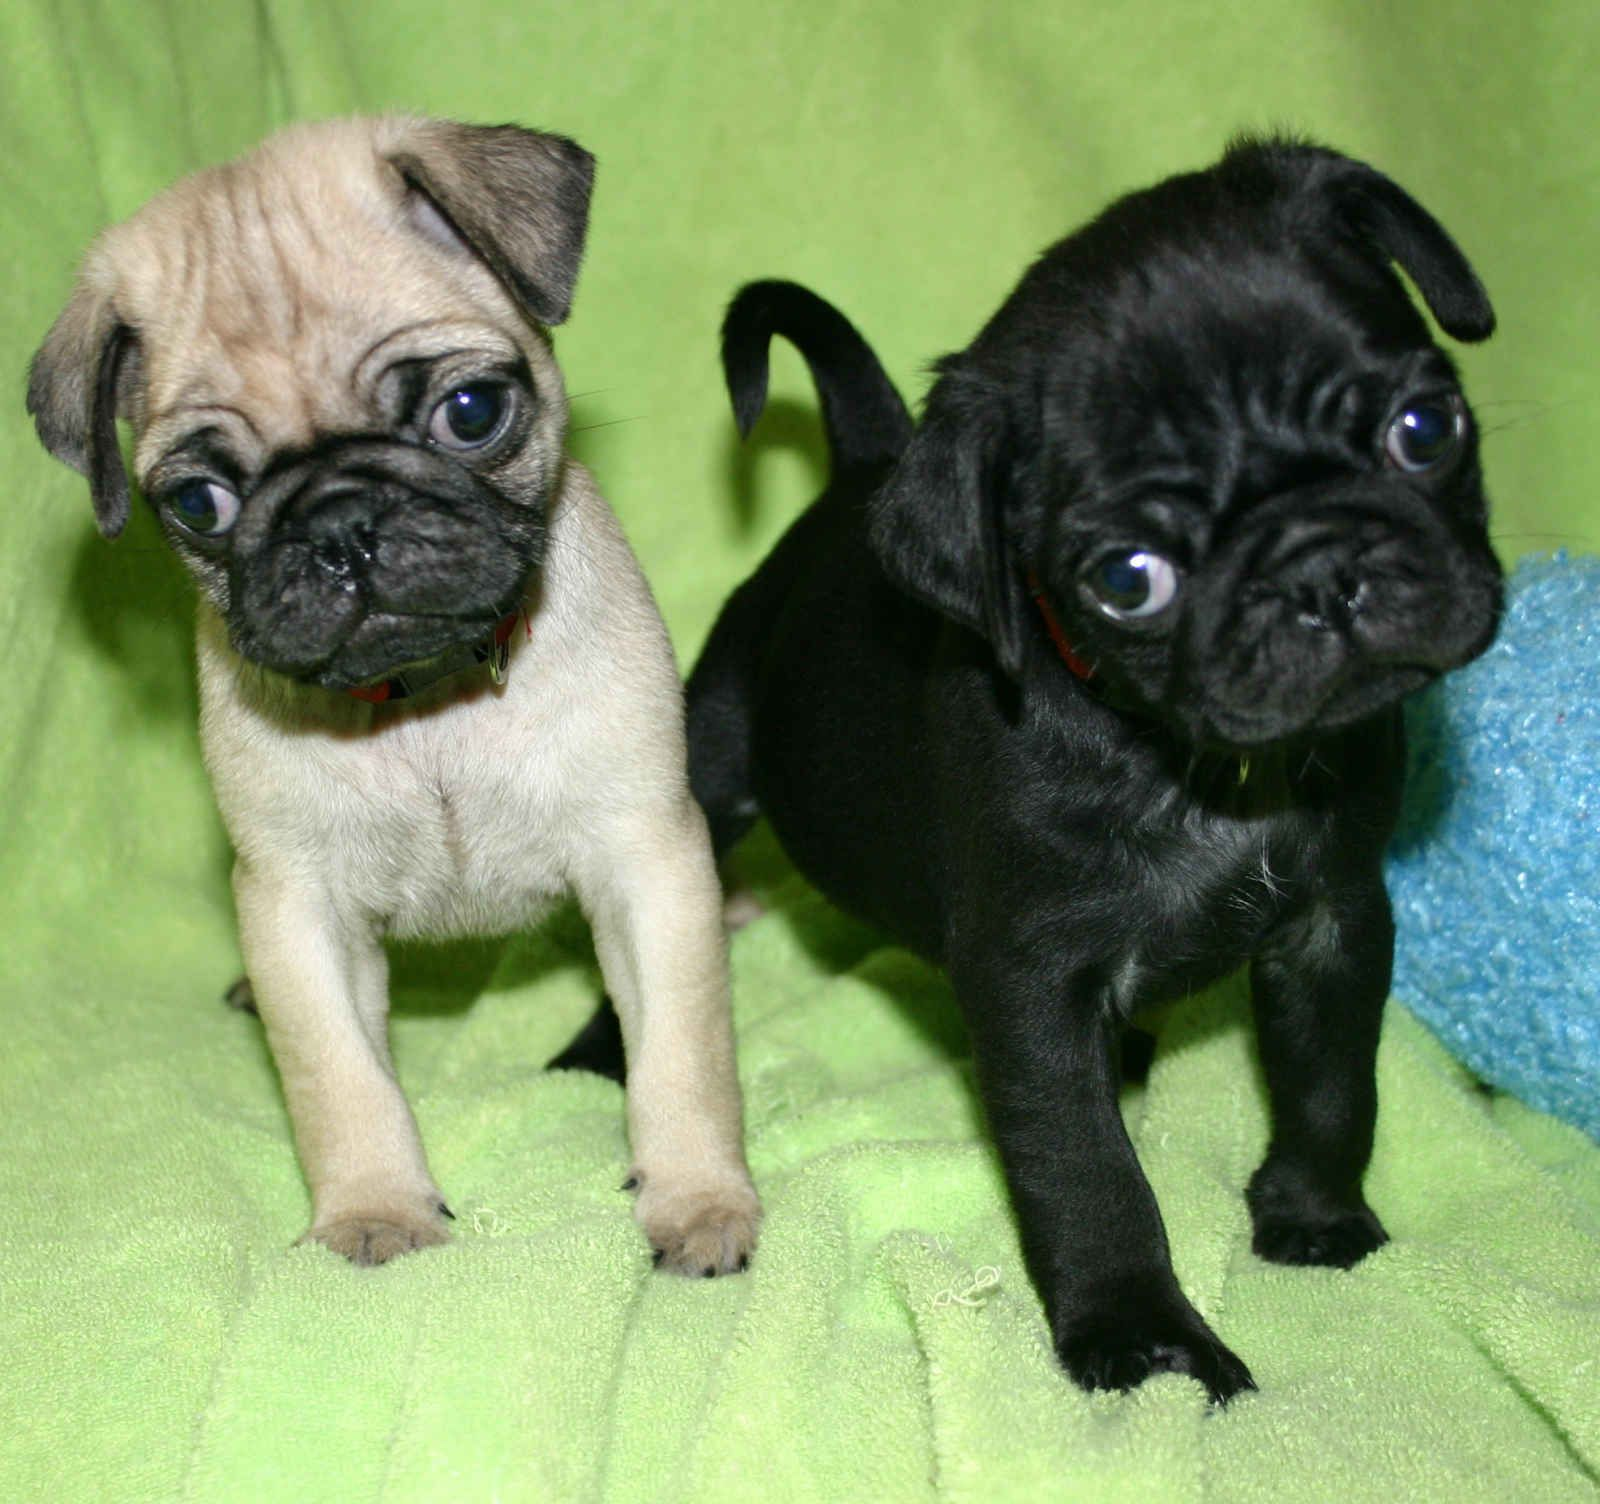 Pug Puppy Pictures Pug Puppies Puppies Black Pug Puppies